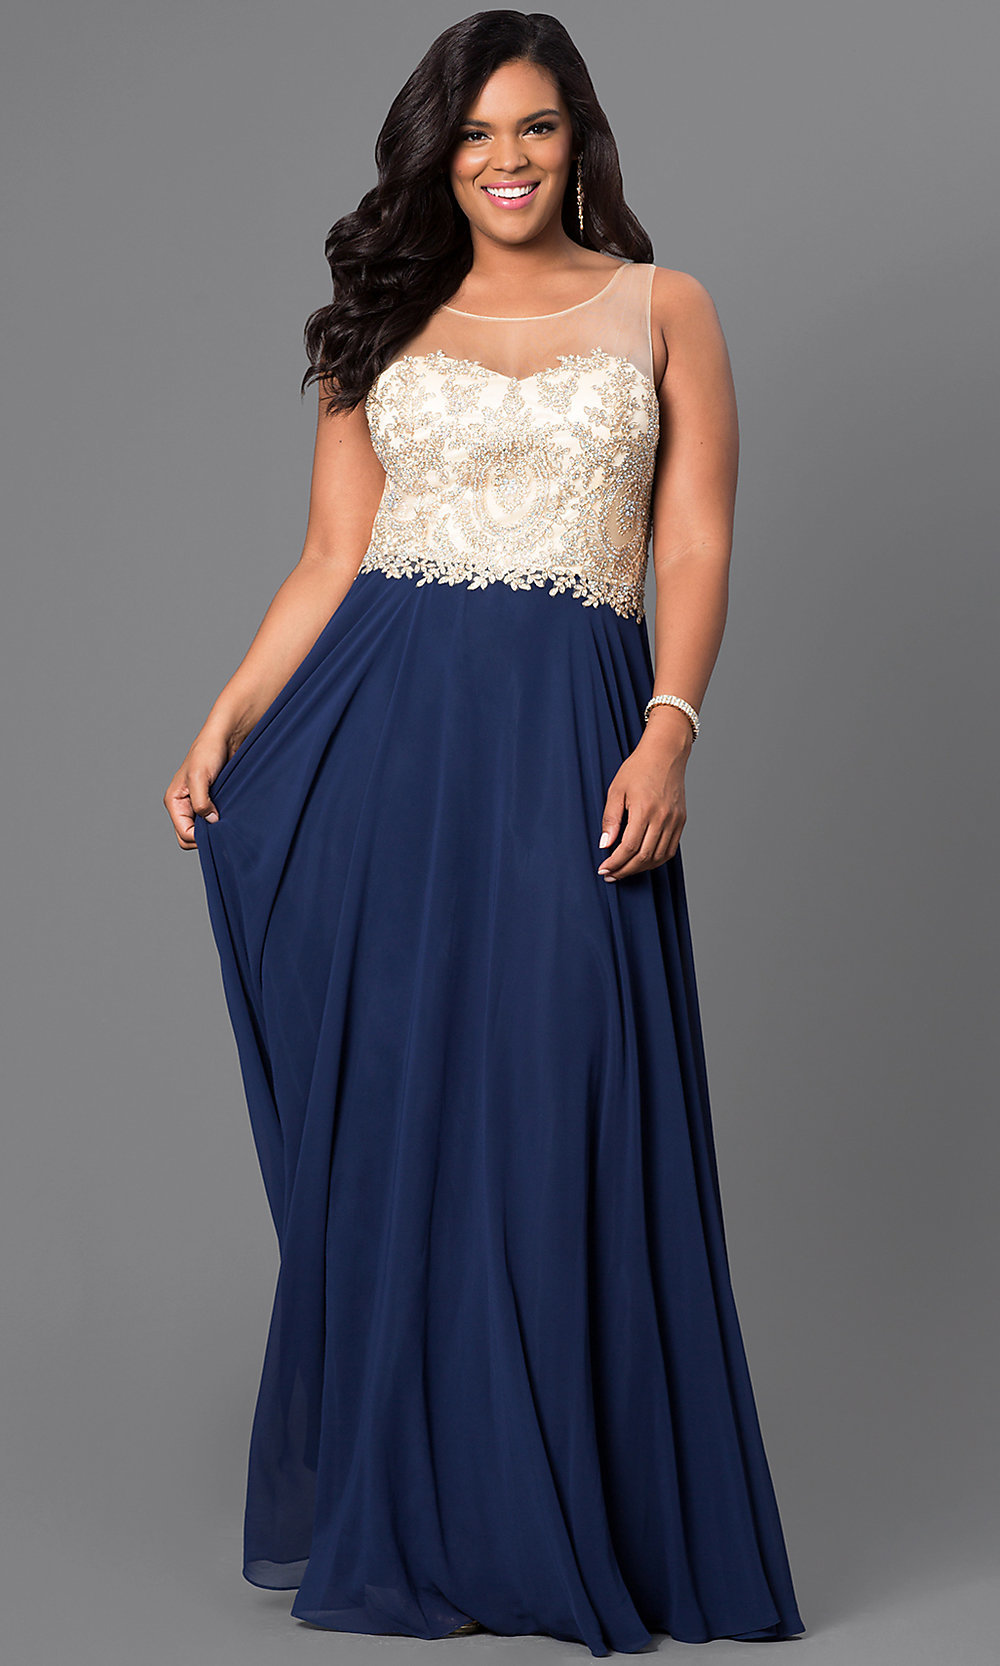 Beaded-Bodice Long Plus-Size Prom Dress - PromGirl